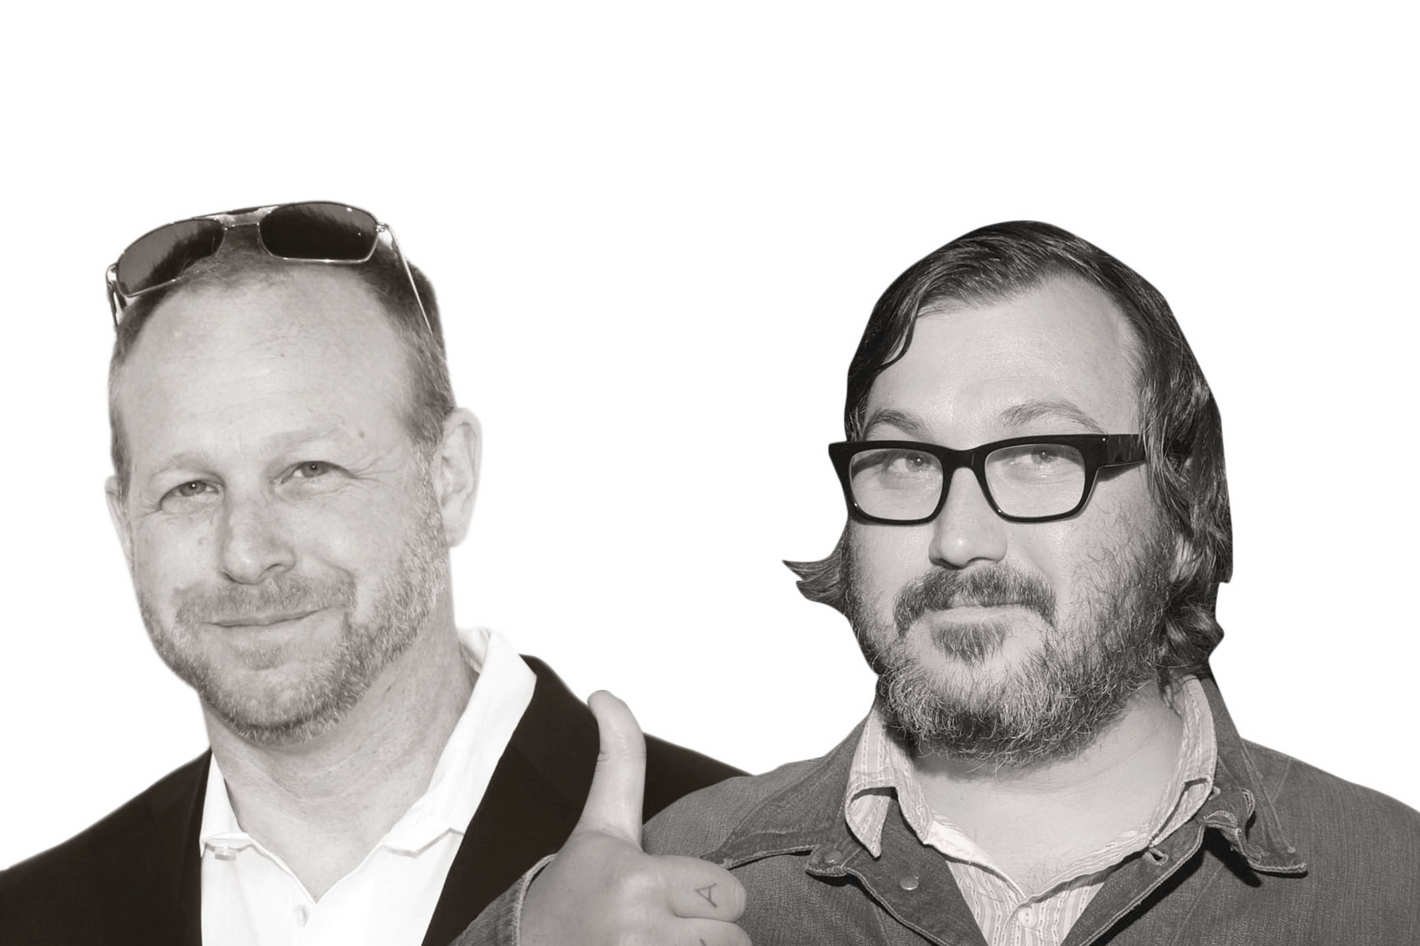 Portland chef Andy Ricker (left) is looking to expand eastward; Stumptown's Duane Sorenson has already conquered NYC.